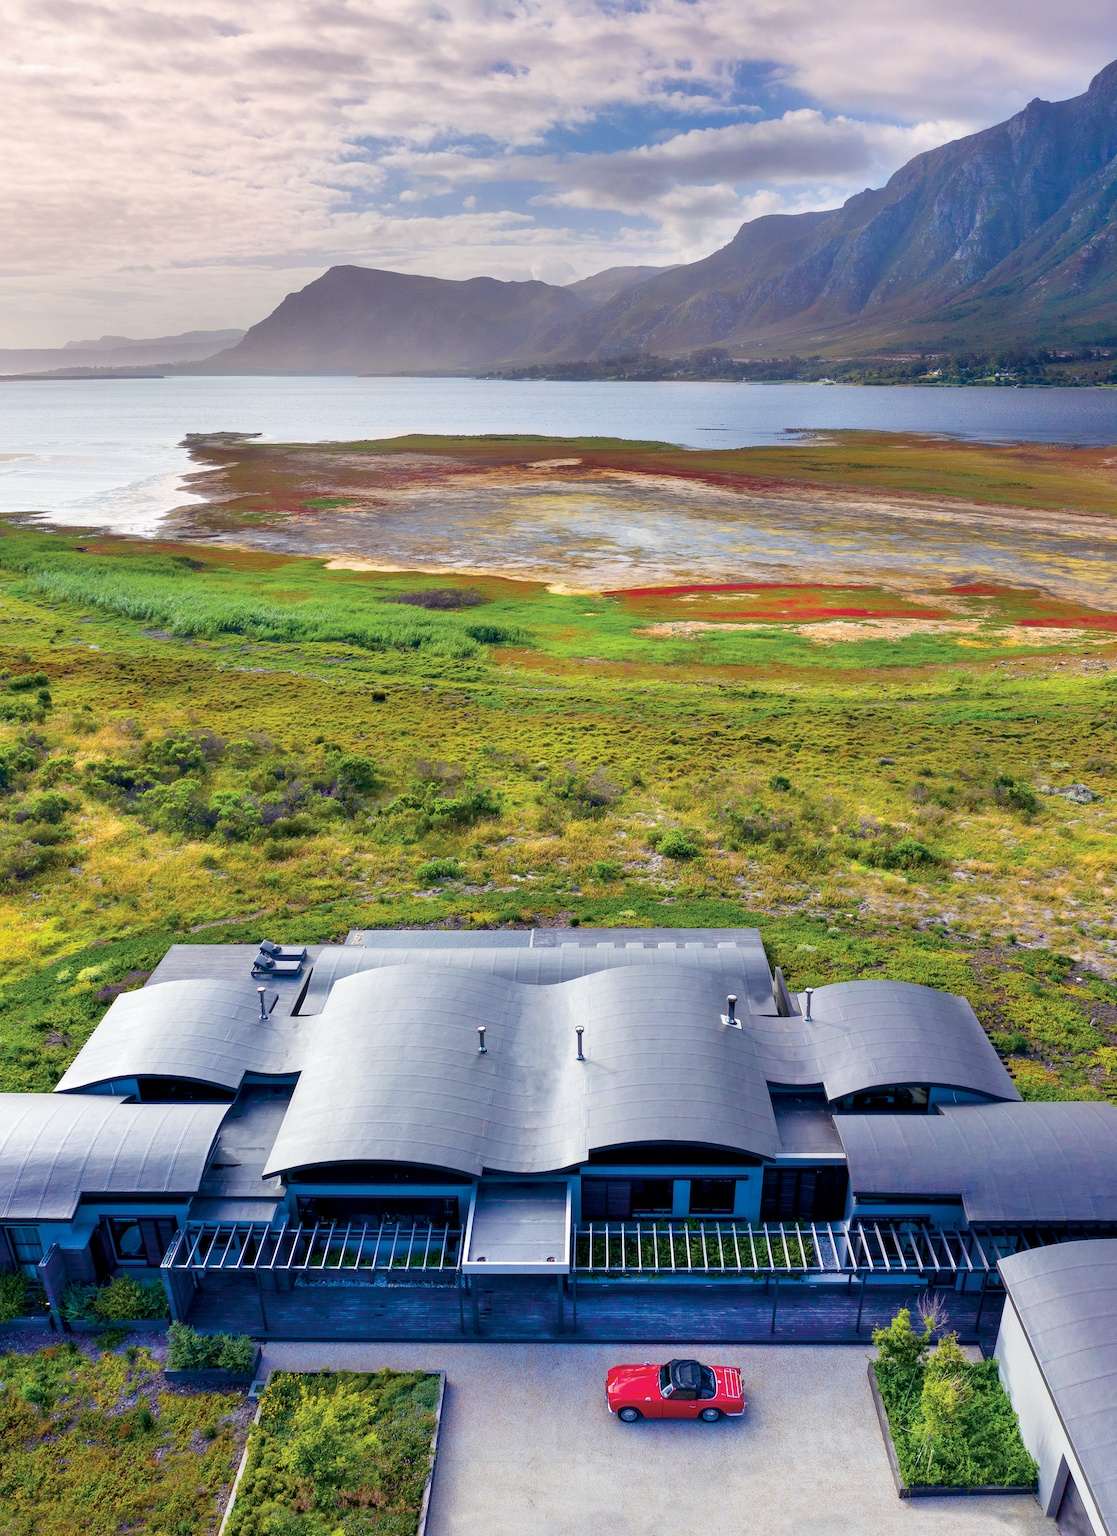 The undulating roof of the Perivoli Lagoon House near Stanford is designed to mirror the local mountain range and blend with its natural surroundings.